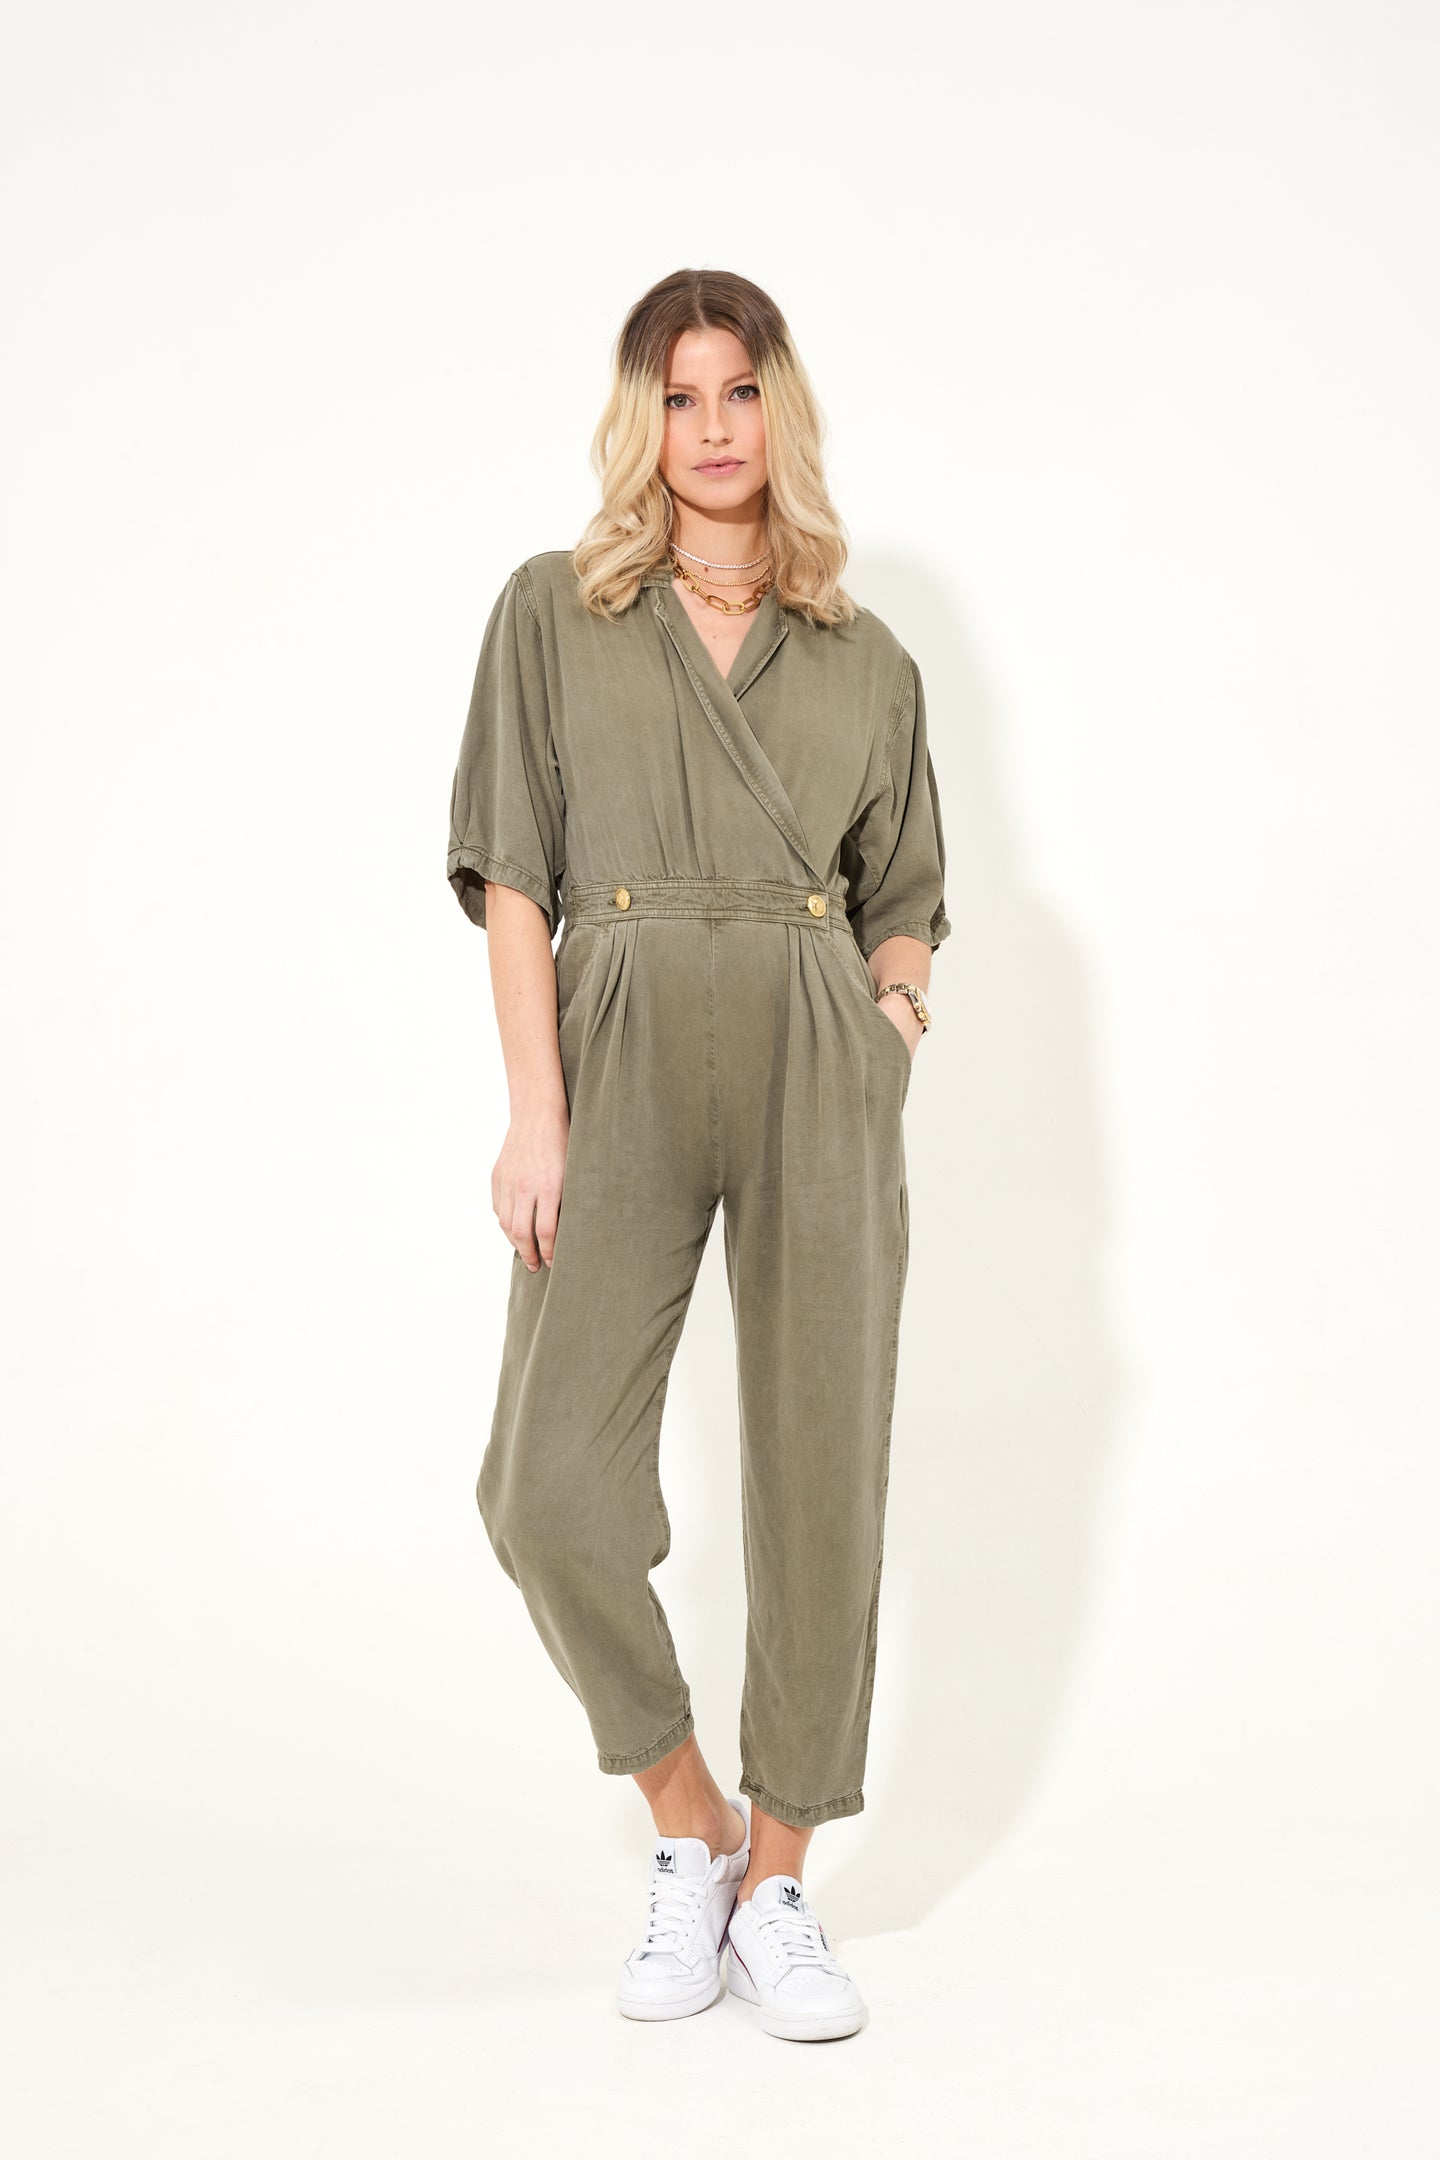 Wanda The Cross Over Power Jumpsuit - At Ease Private